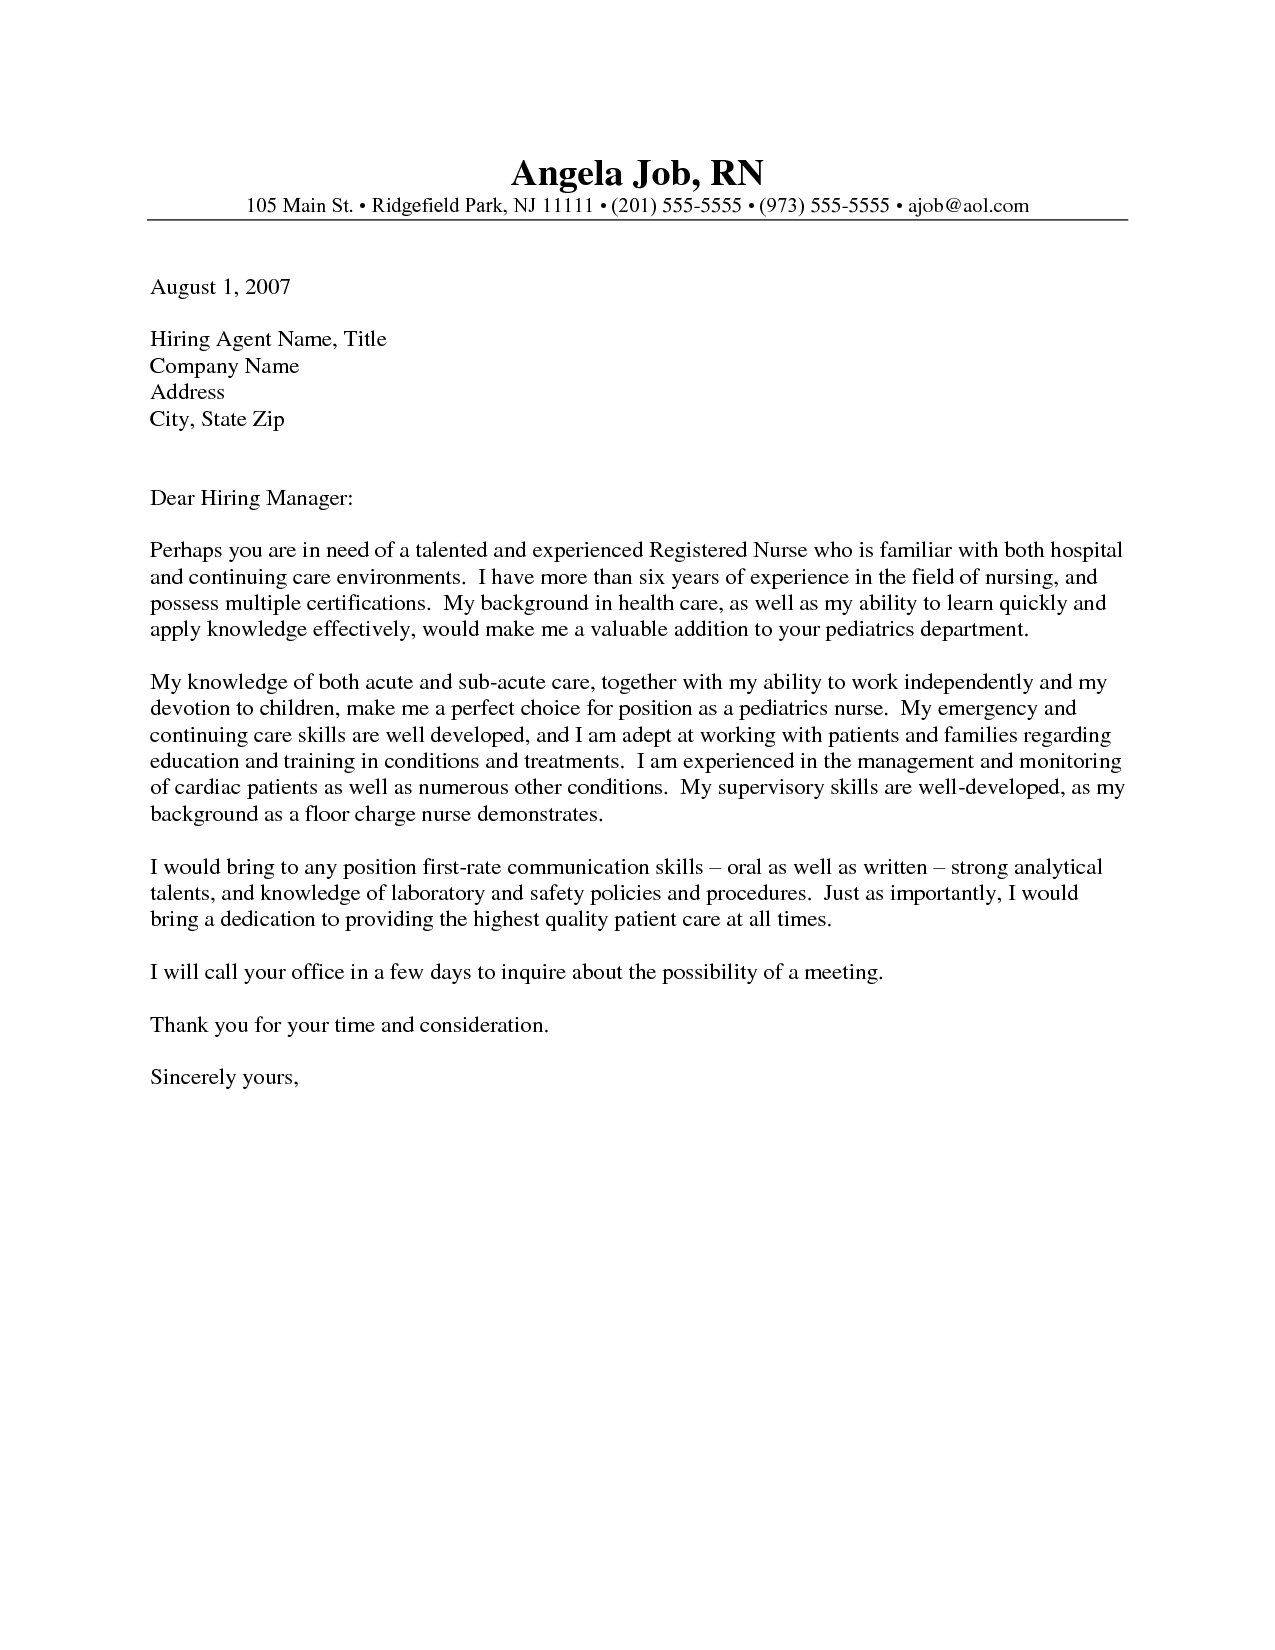 cover letters - Google Search | cover letters | Nursing cover letter ...